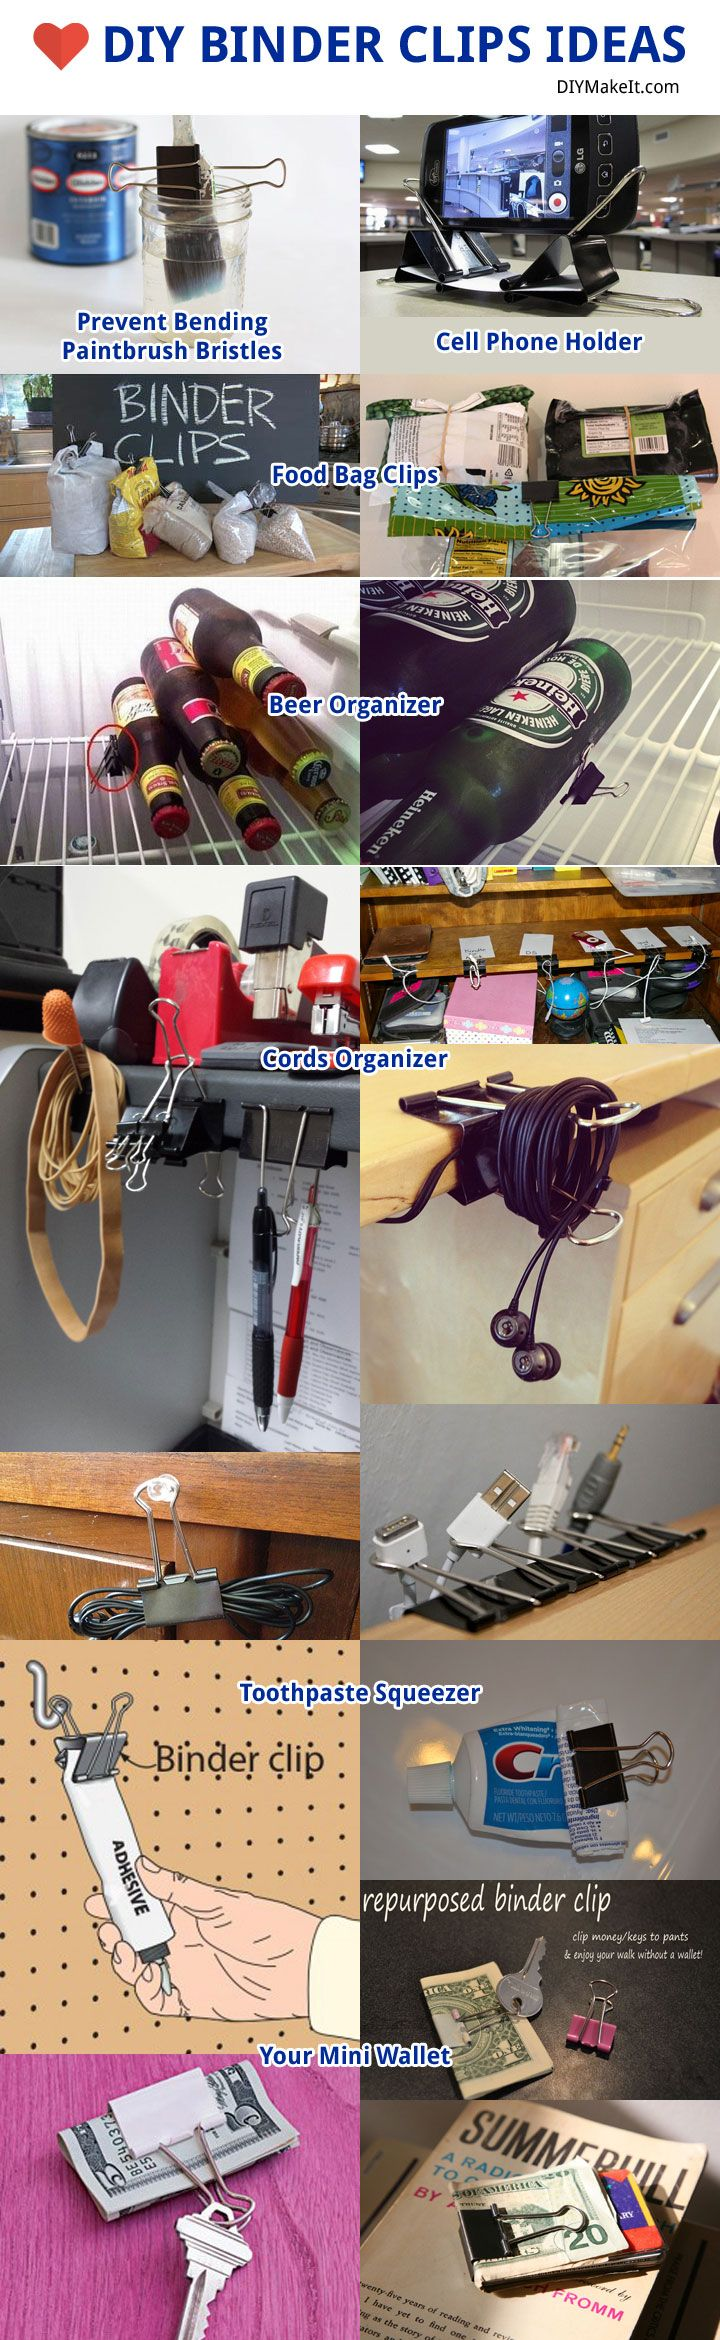 #DIY Binder Clips Useful Ideas